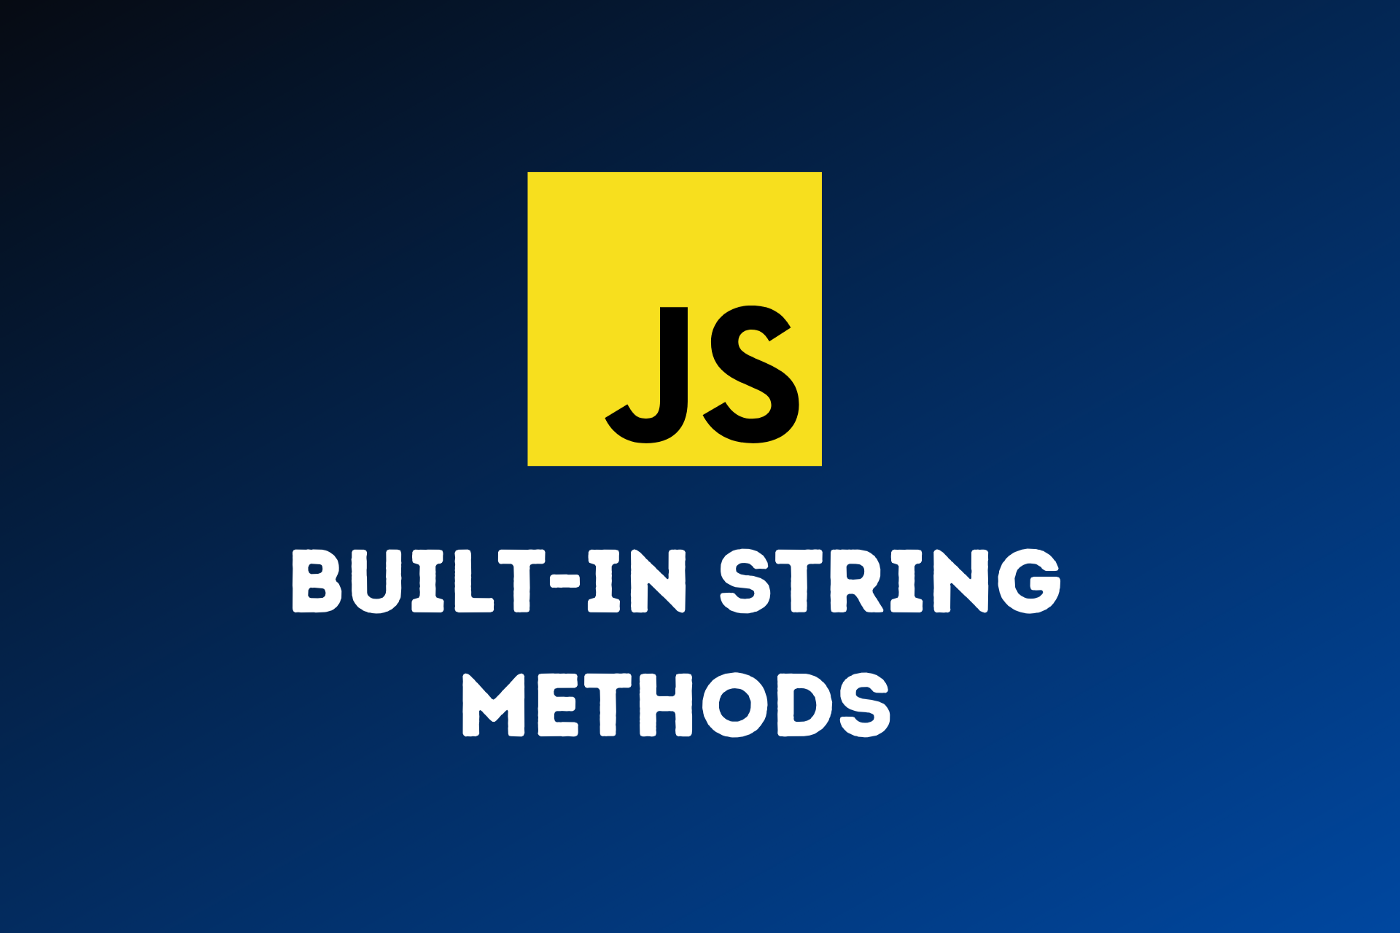 The letters JS in a yellow square and the words built-in string methods, all on a blue background